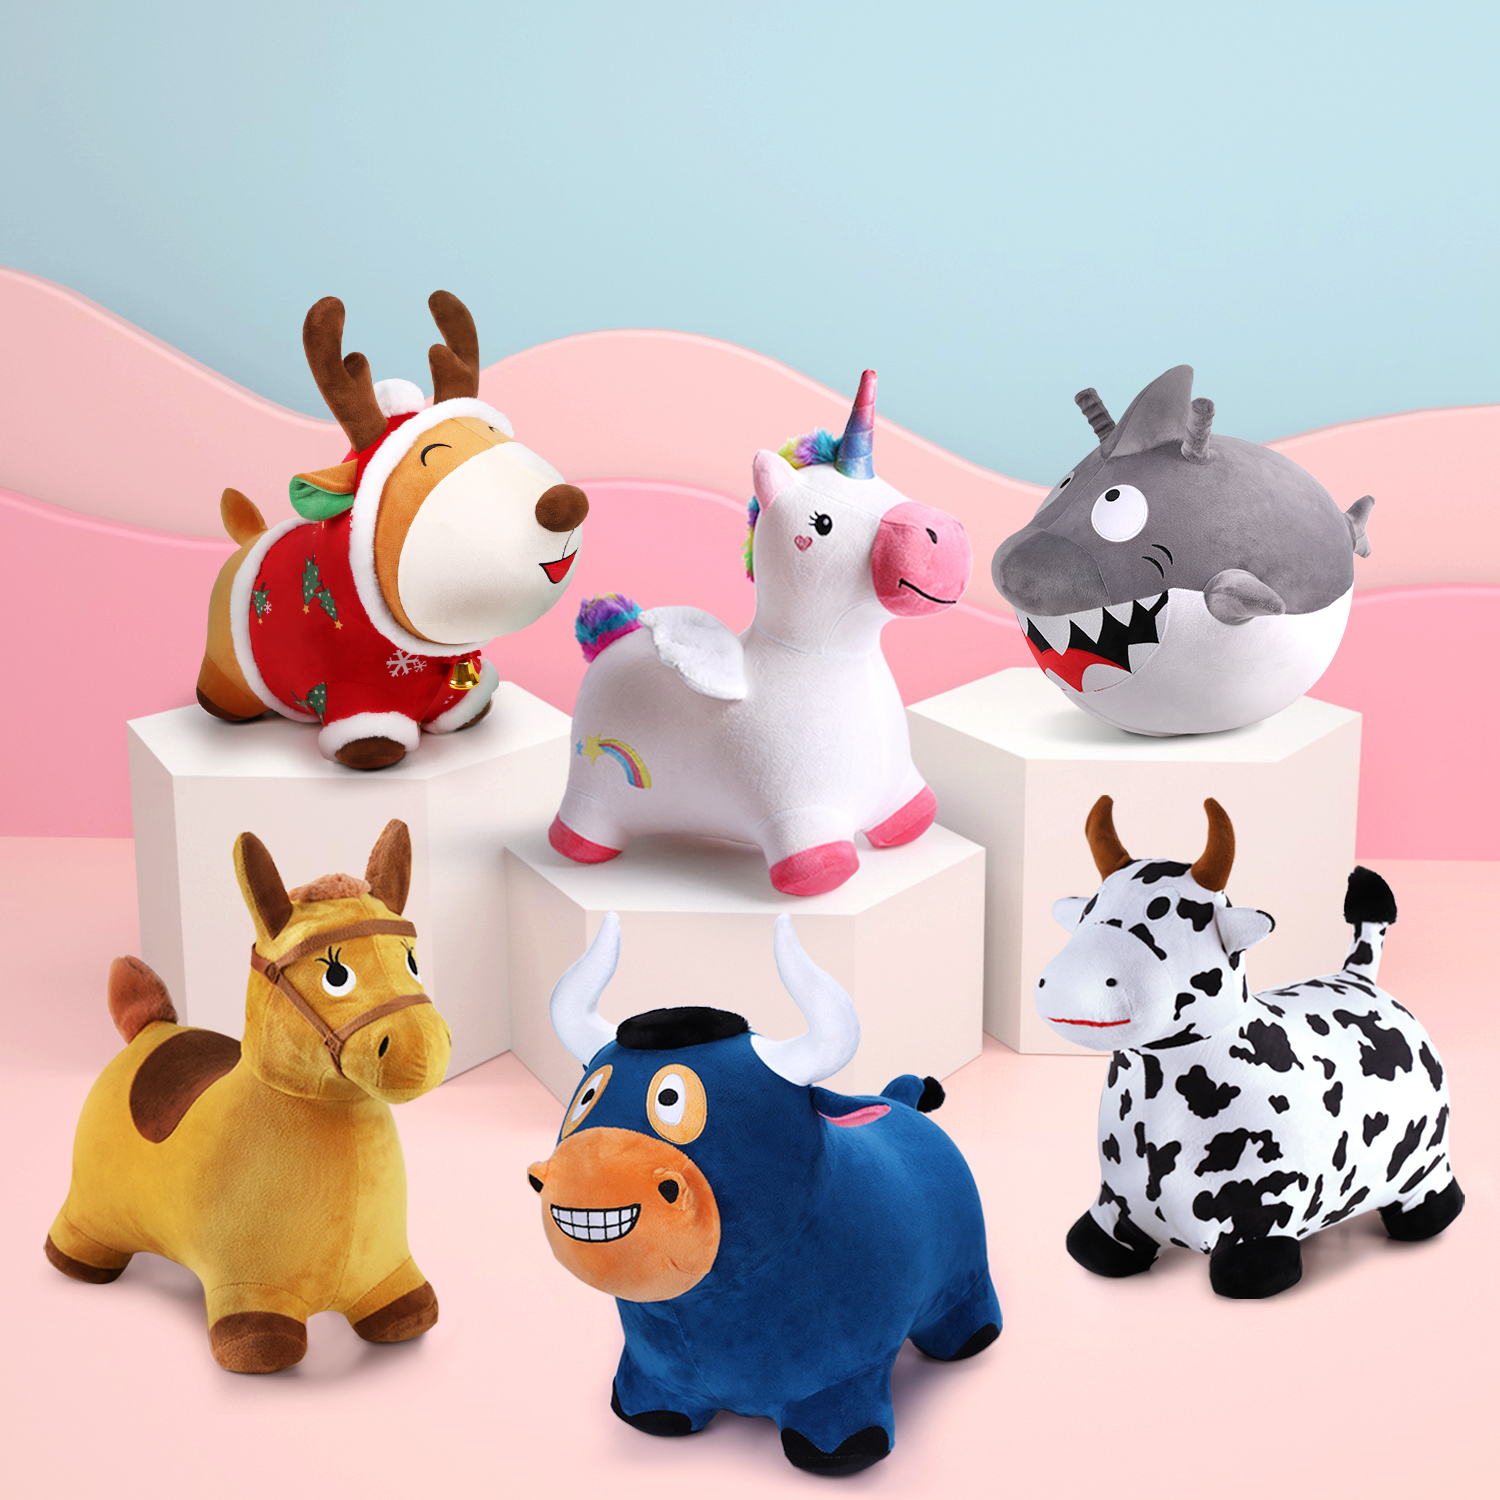 Kids Ride On Bouncy Play Toys Hopping Horse Plush Inflatable Animals Birthday Gifts for 3 4 5 Years Old Boys Girls Toddlers